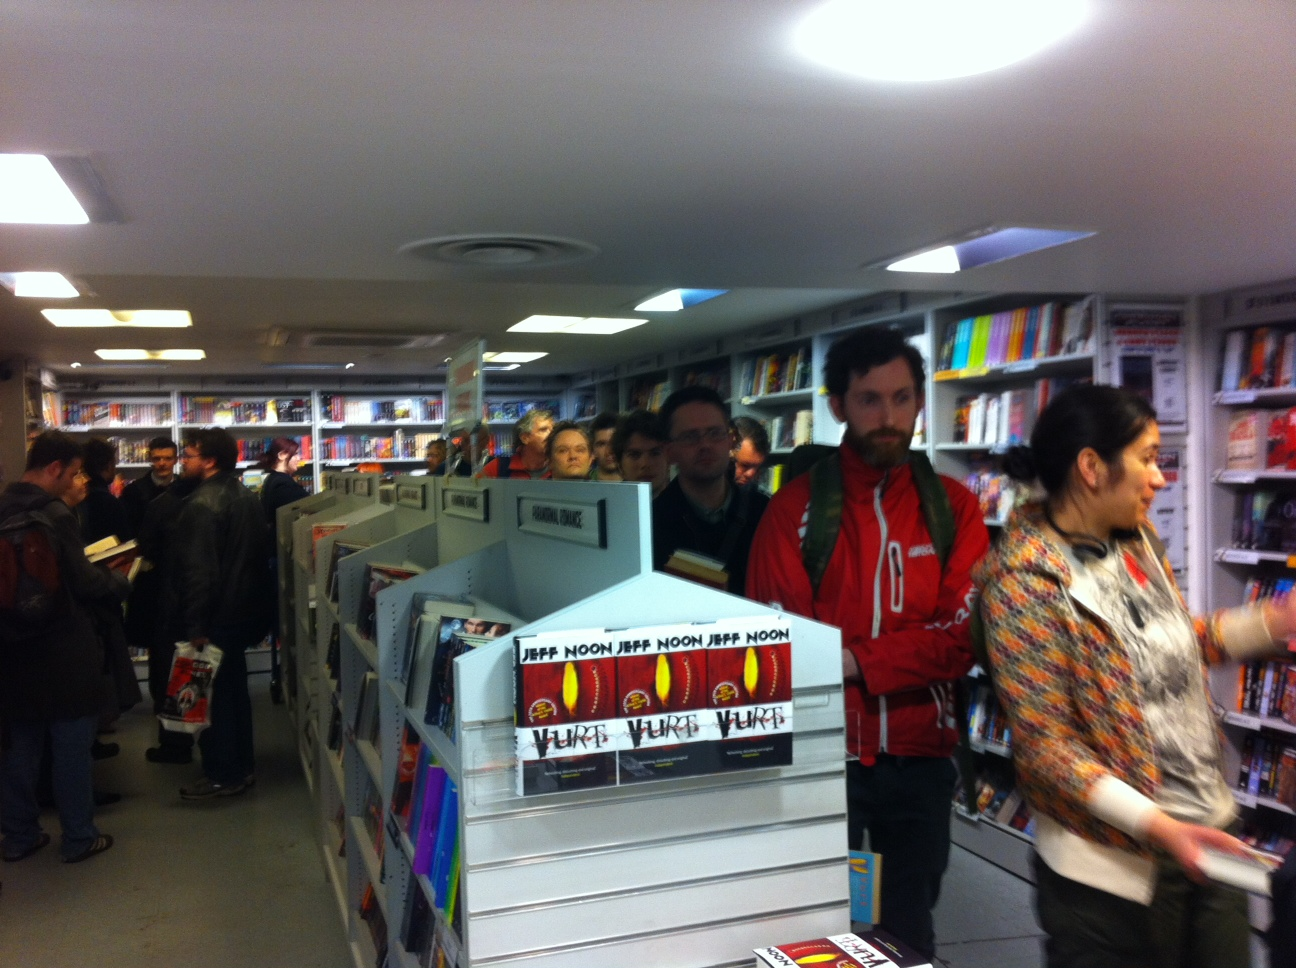 Images from Forbidden Planet launch event for the VURT anniversary edn.